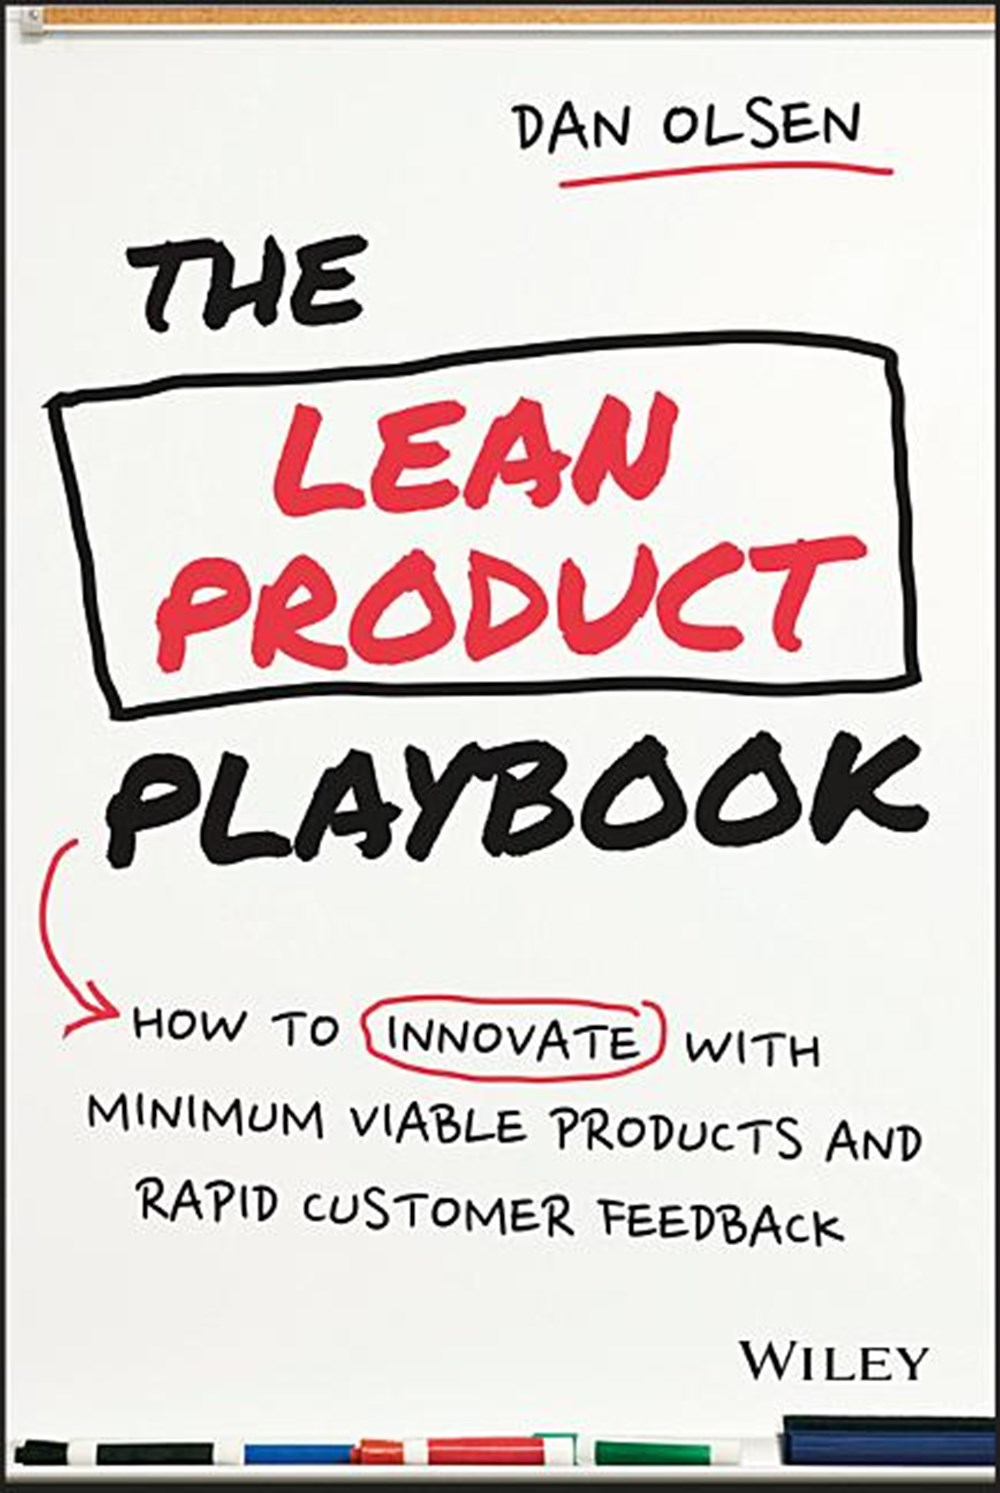 Lean Product Playbook How to Innovate with Minimum Viable Products and Rapid Customer Feedback